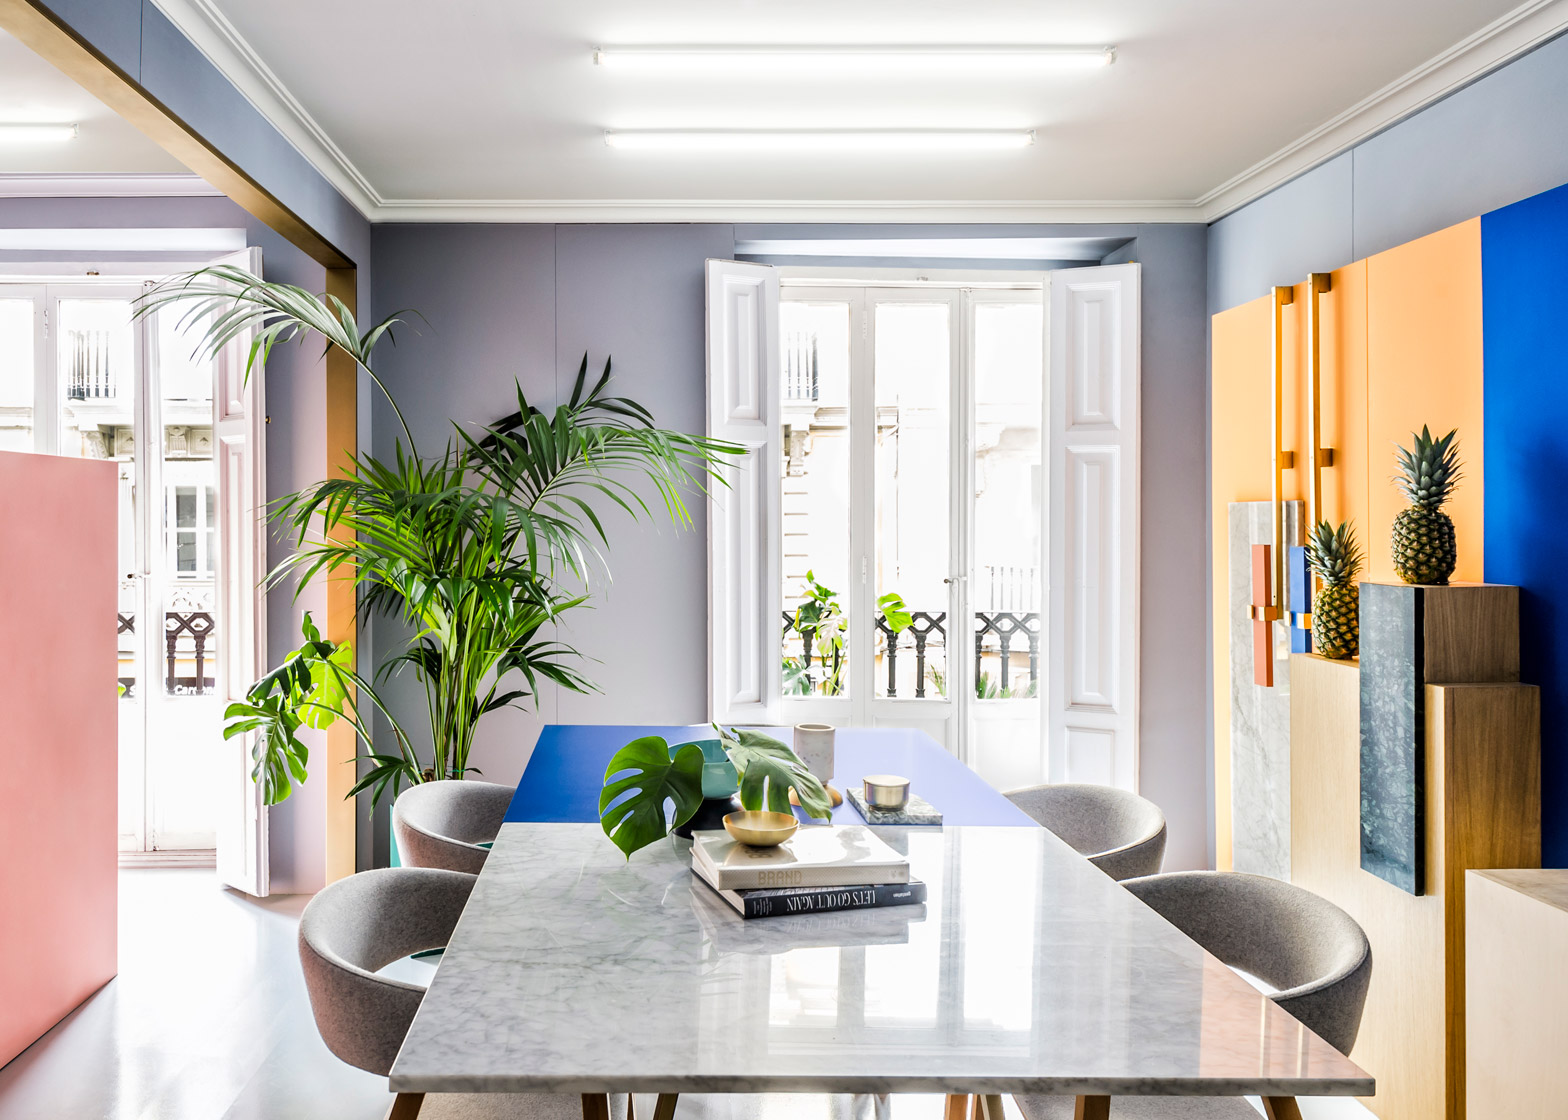 Masquespacio interior-design studio renovation in Valencia Spain